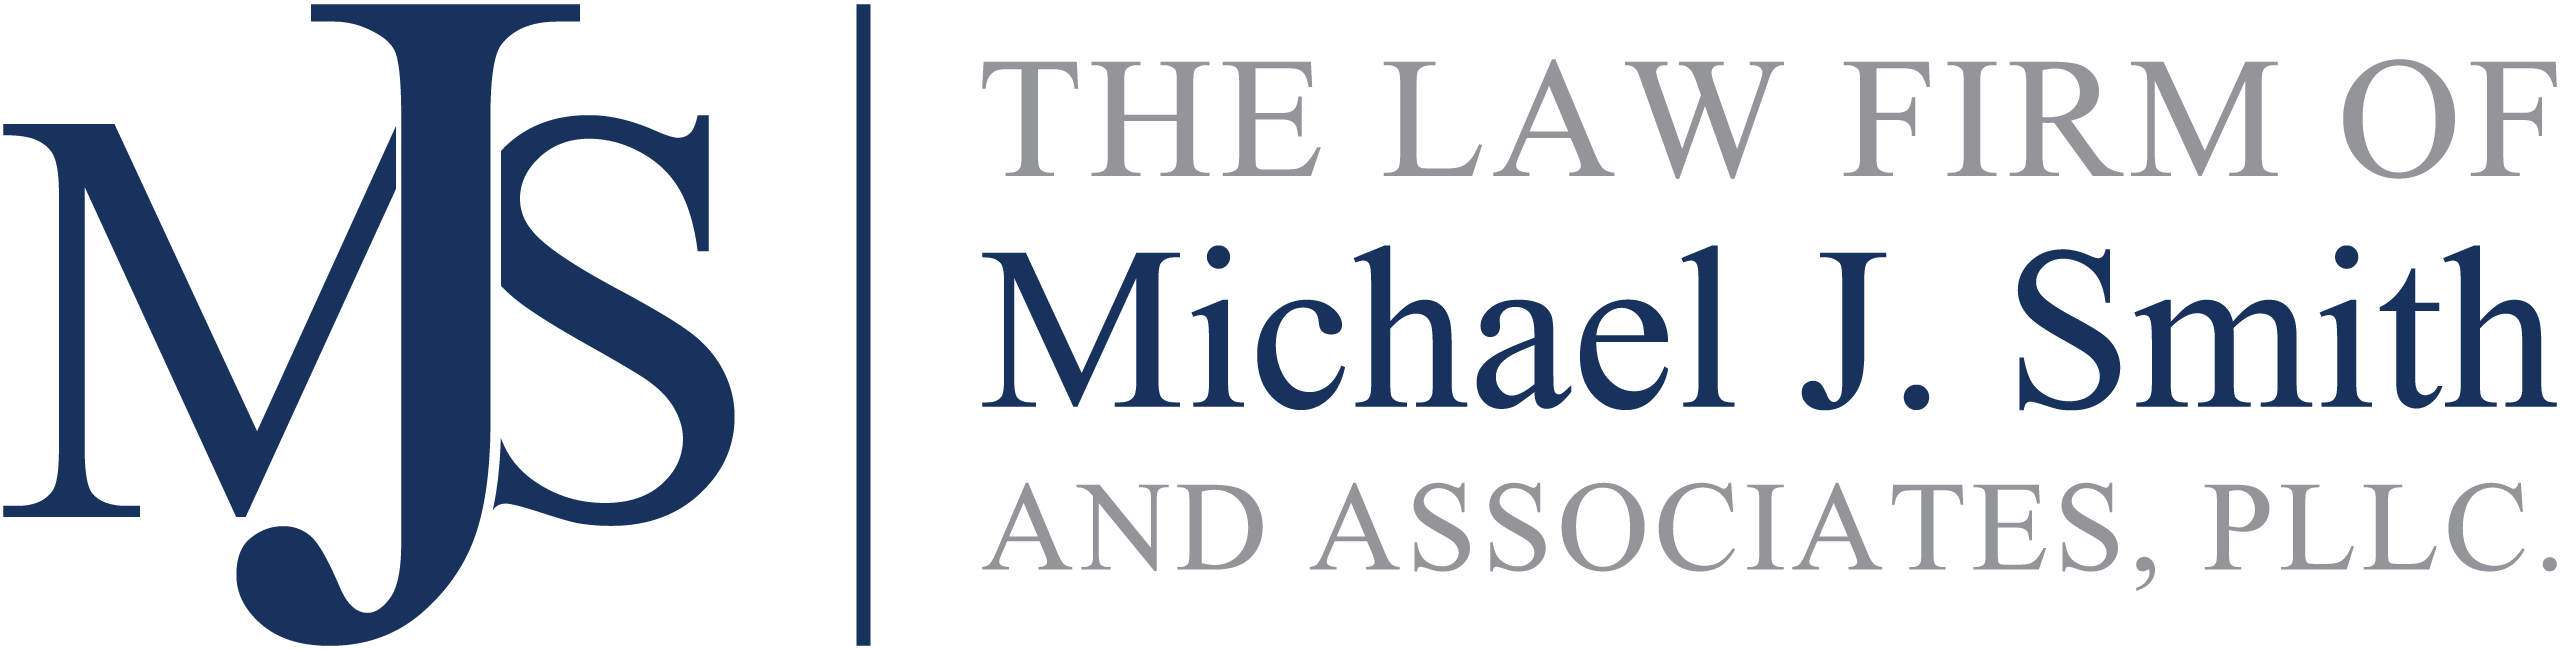 The-Law-Firm-Of-Michael-J-Smith-and-Associates-PLLC (1)